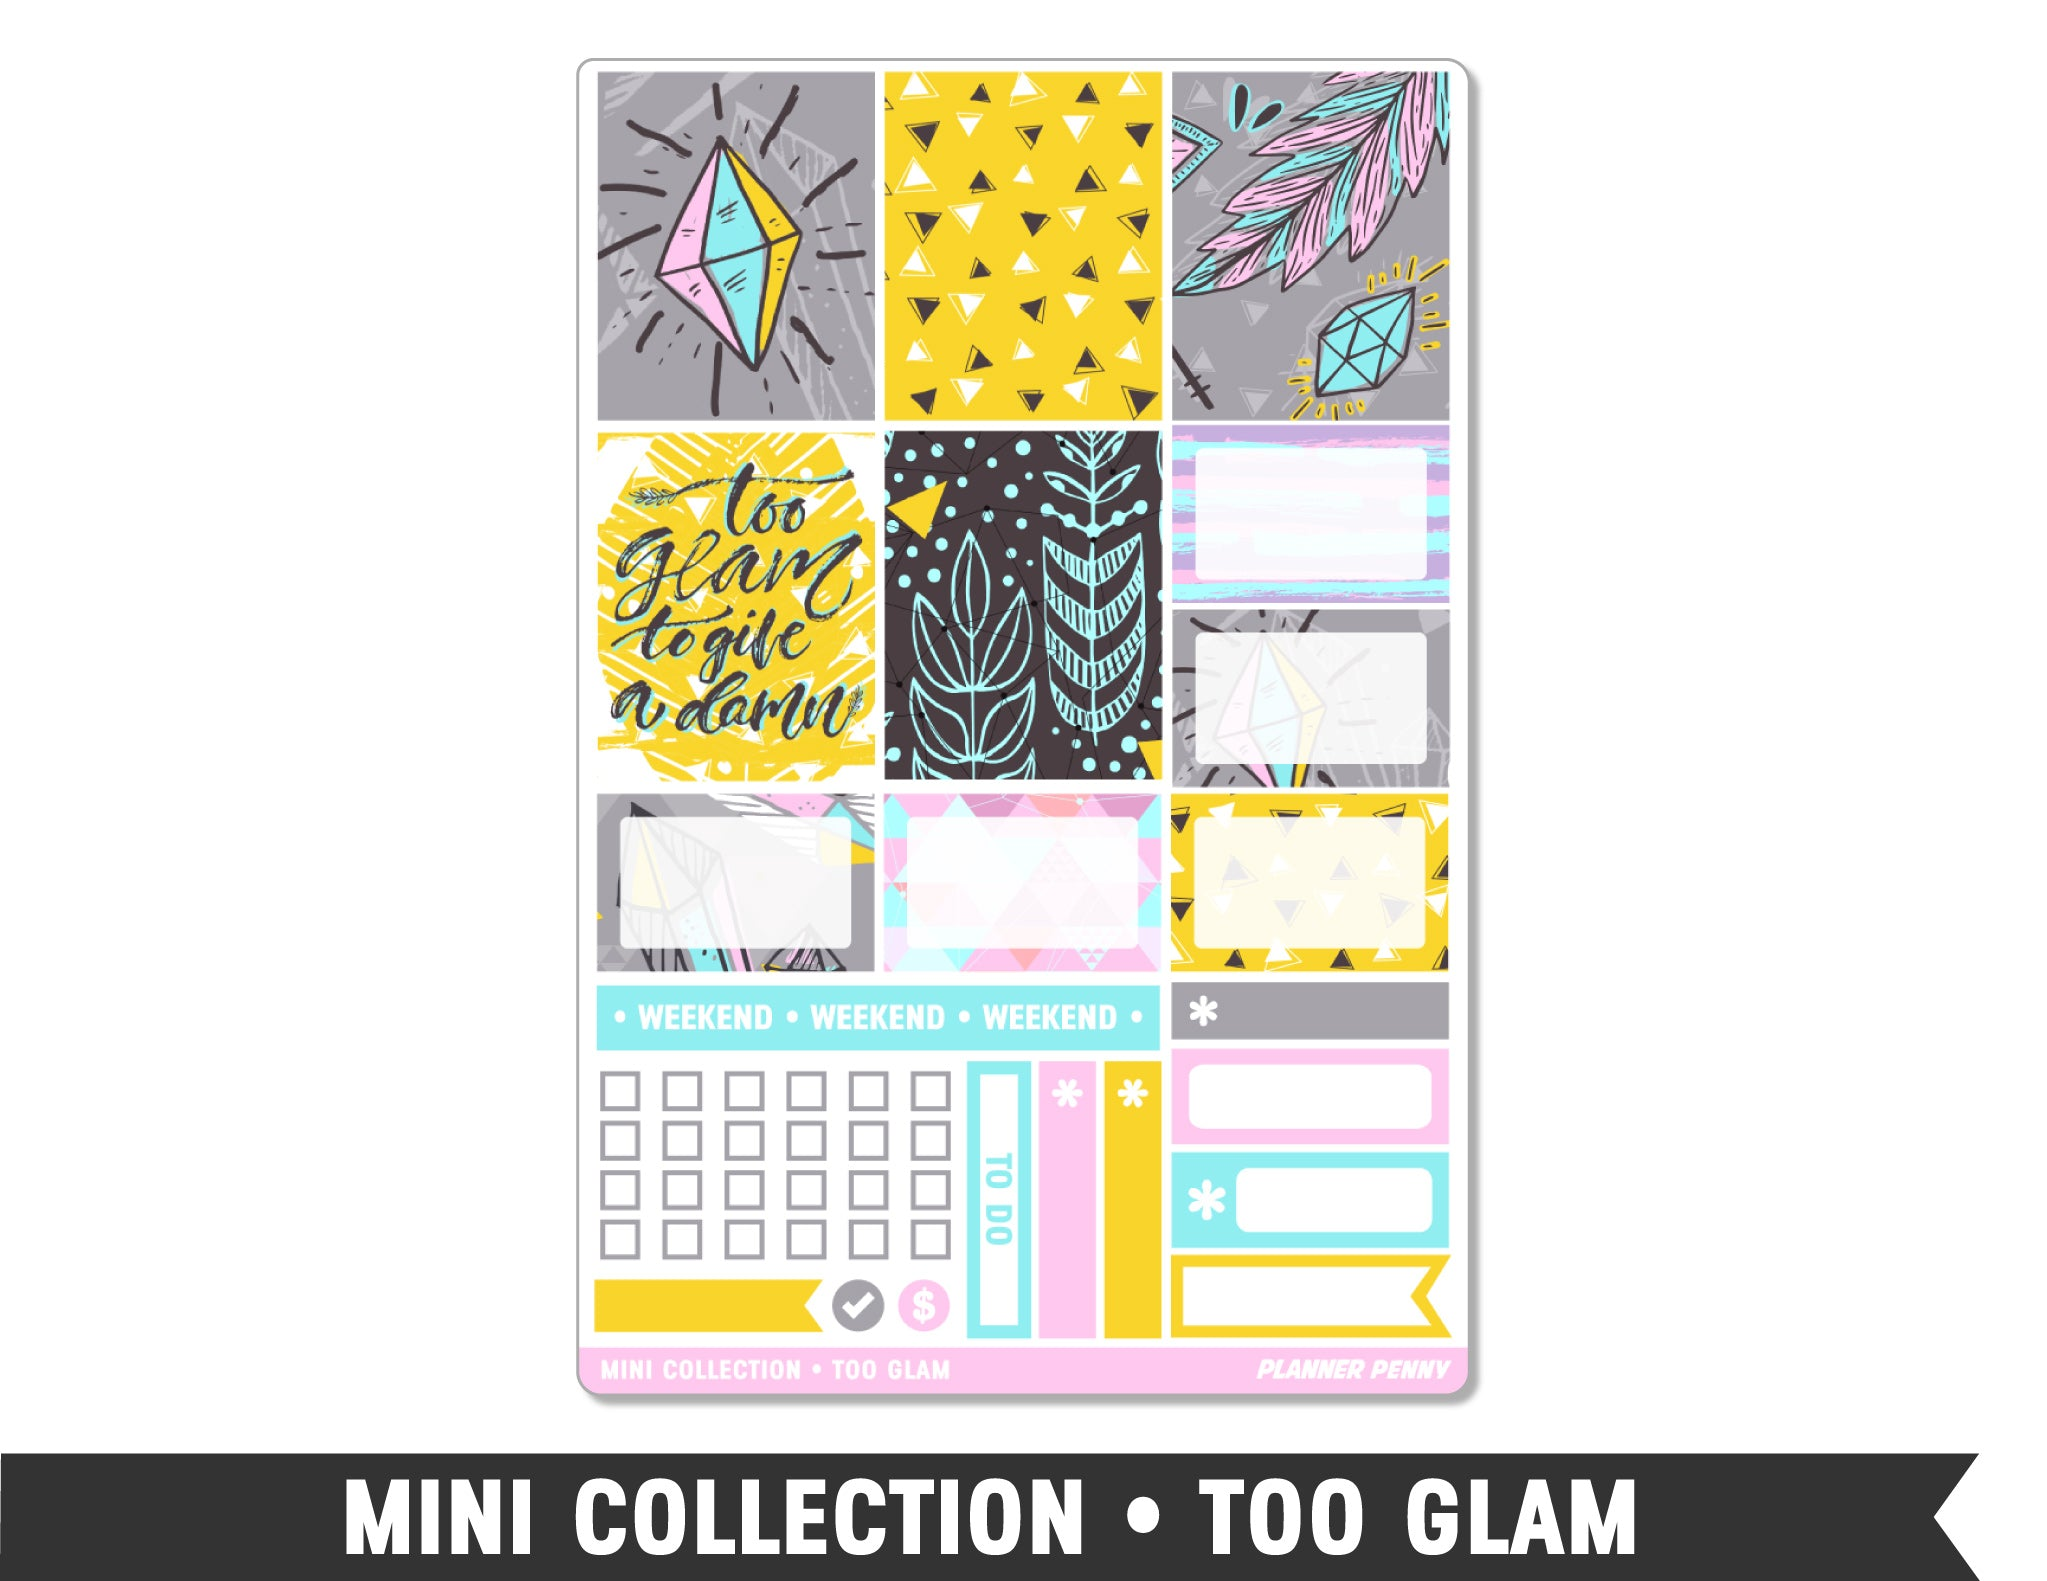 Mini Collection • Too Glam • Weekly Spread Planner Stickers - Planner Penny